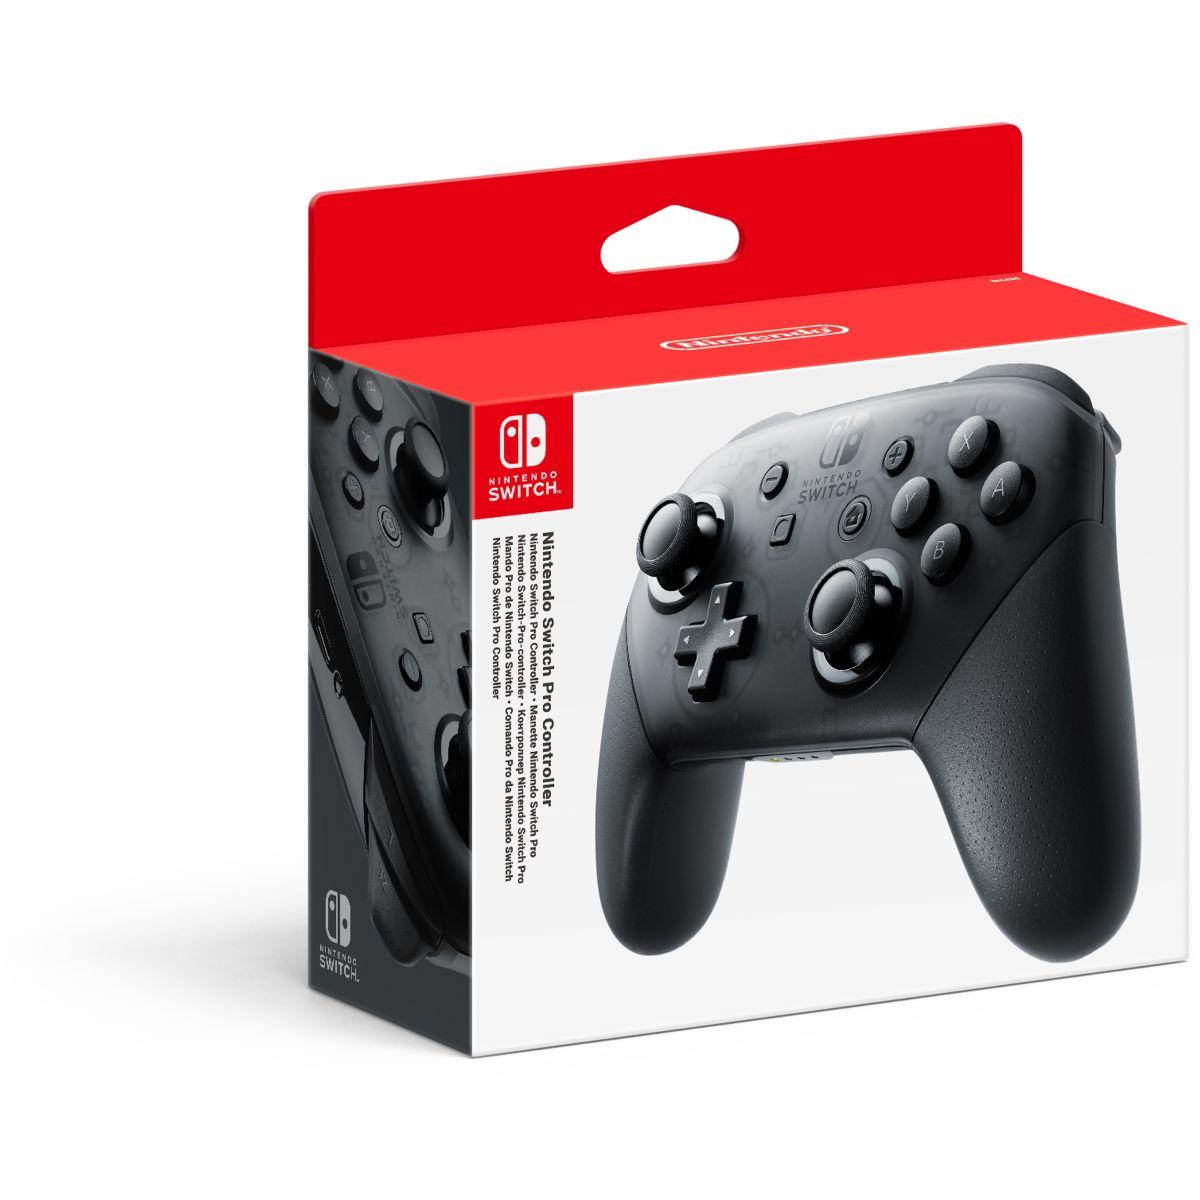 Acc. nintendo manette switch pro - 3% de remise immédiate avec le code : multi3 (photo)